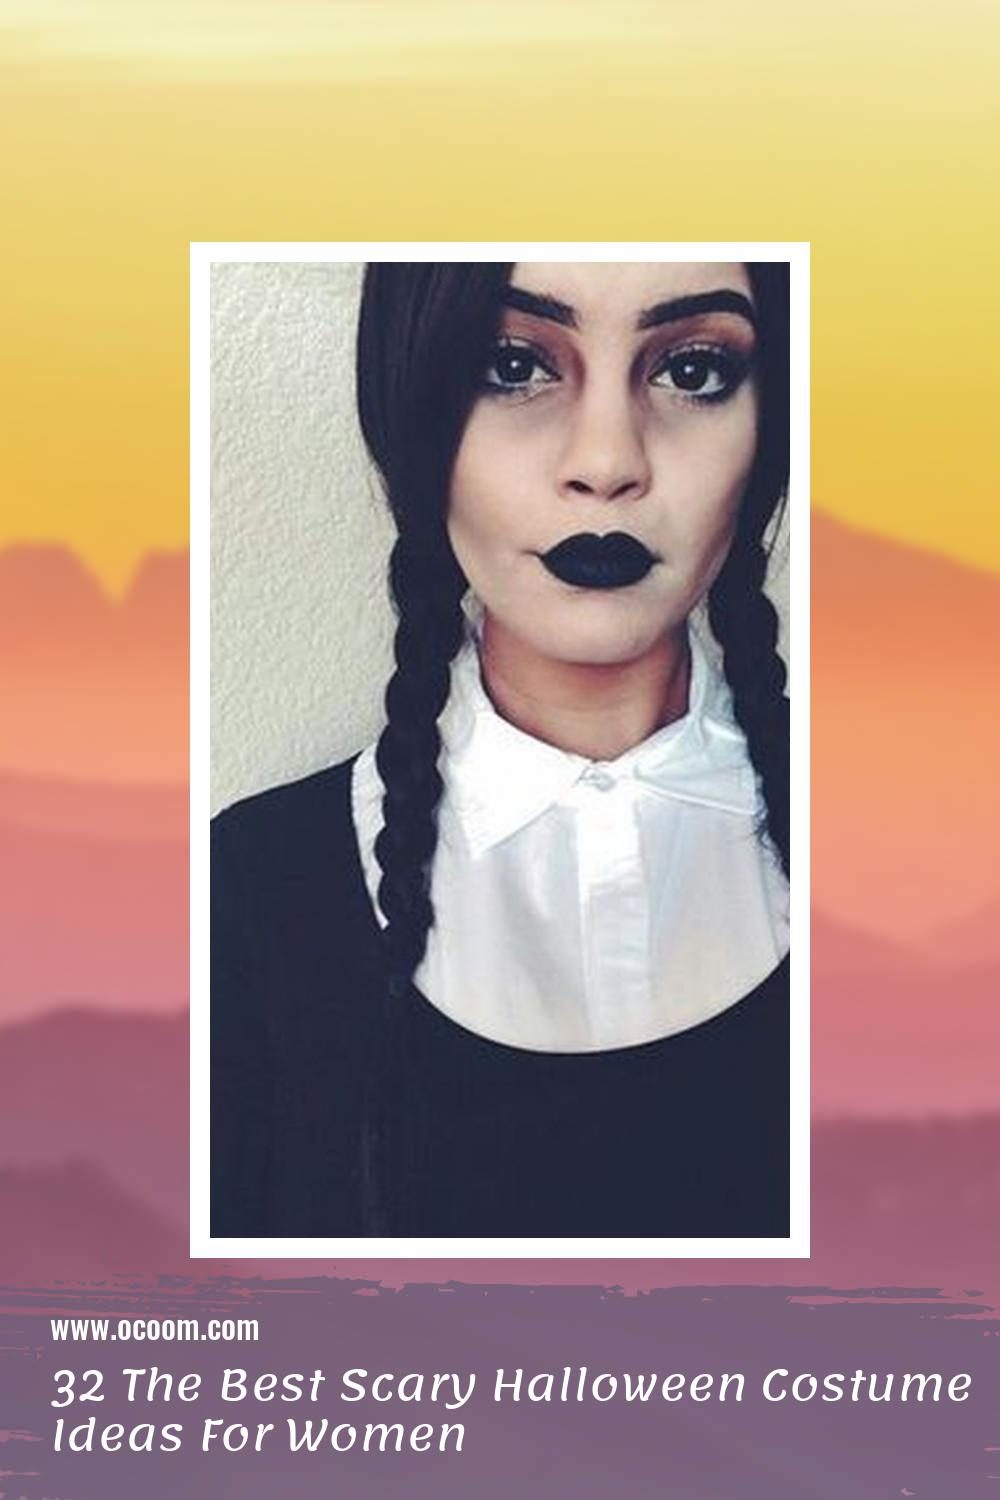 32 The Best Scary Halloween Costume Ideas For Women 29